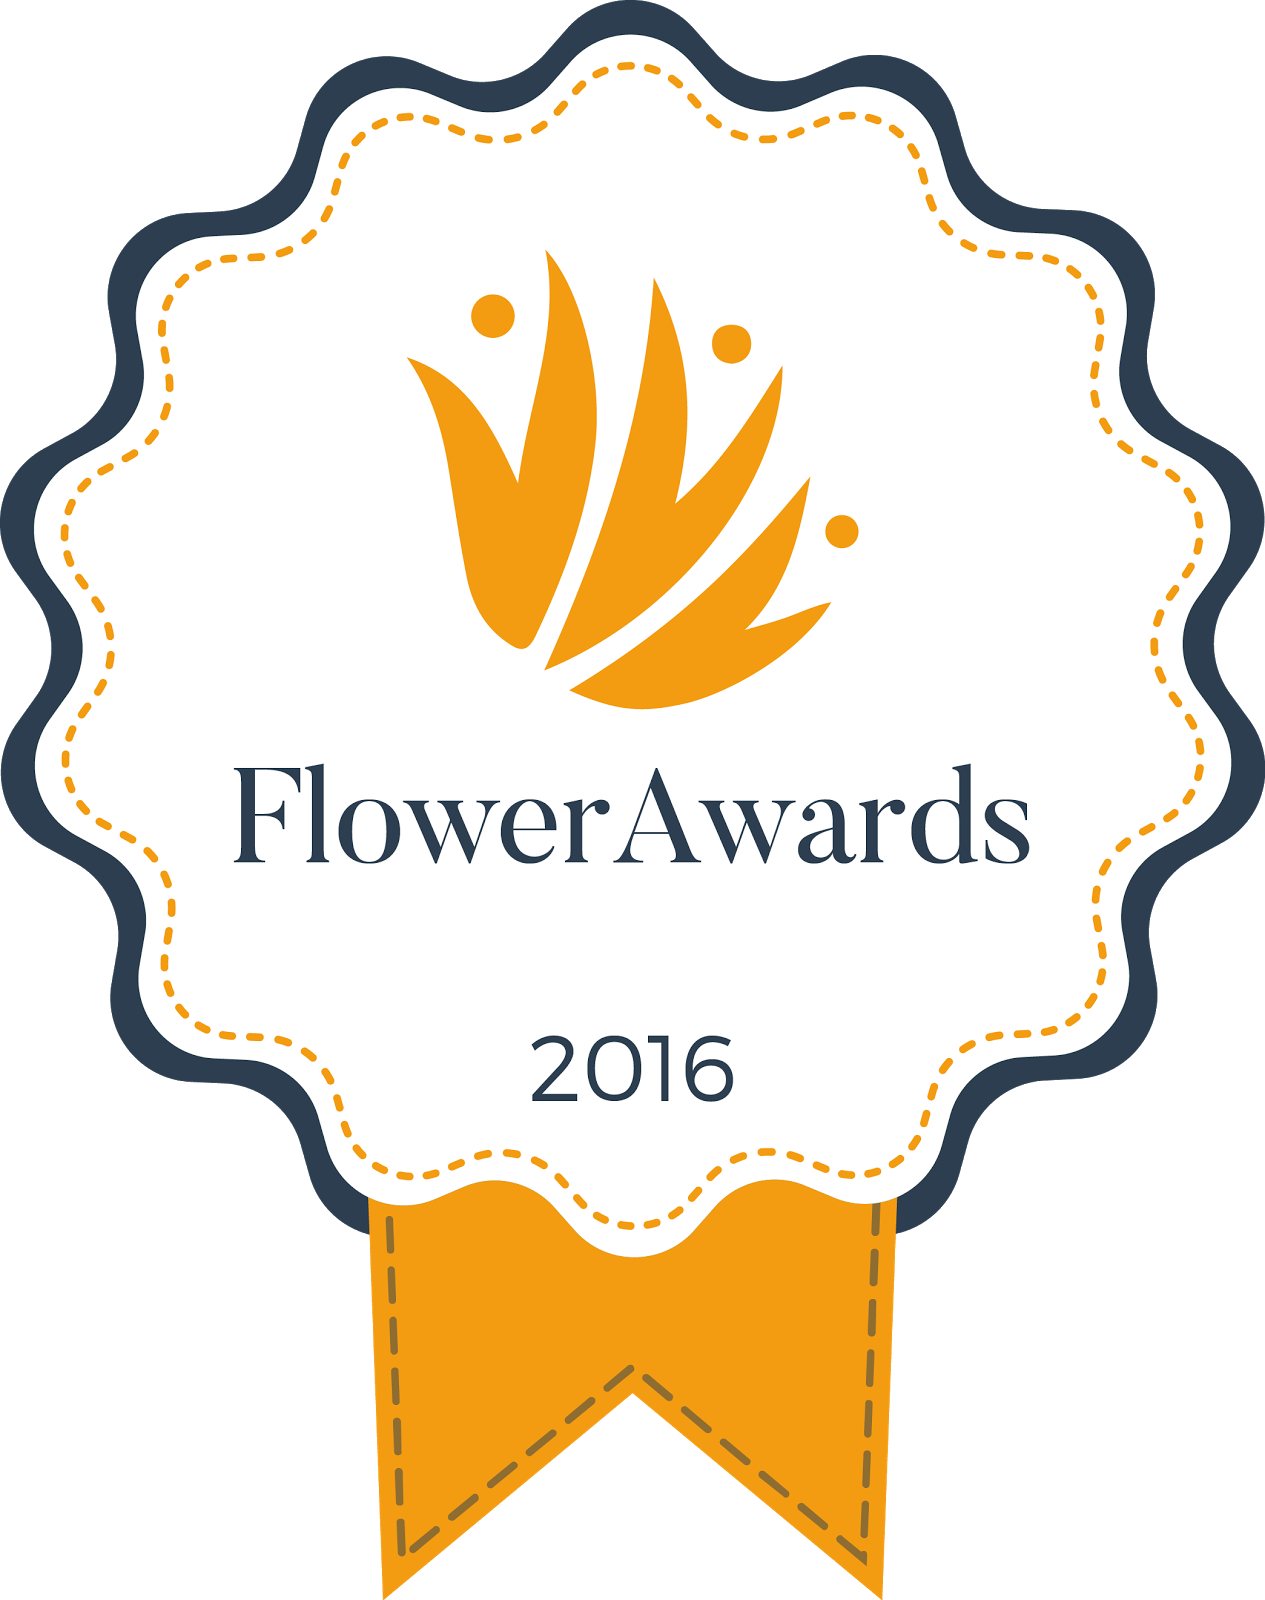 Flower Awards 2016